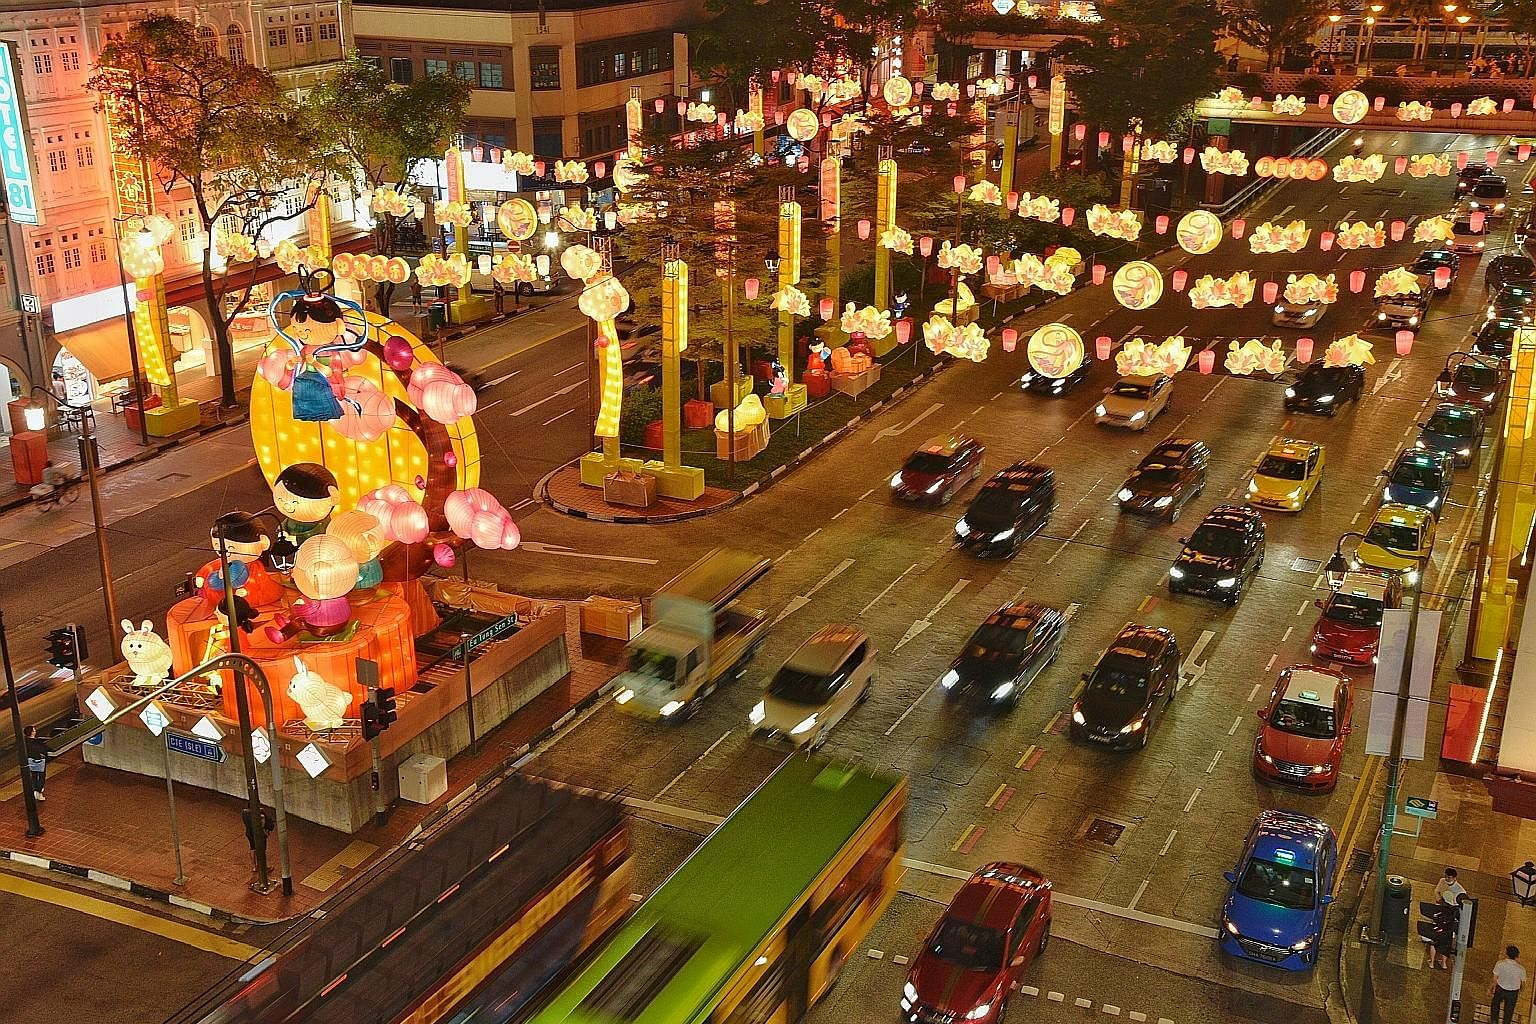 Chinatown's annual Mid-Autumn Festival light-up kicked off last night. The light-up, which lasts until Oct 16, features about 700 lanterns and sculptures depicting traditional festival motifs and characters such as Chang'e, goddess of the moon in Chi